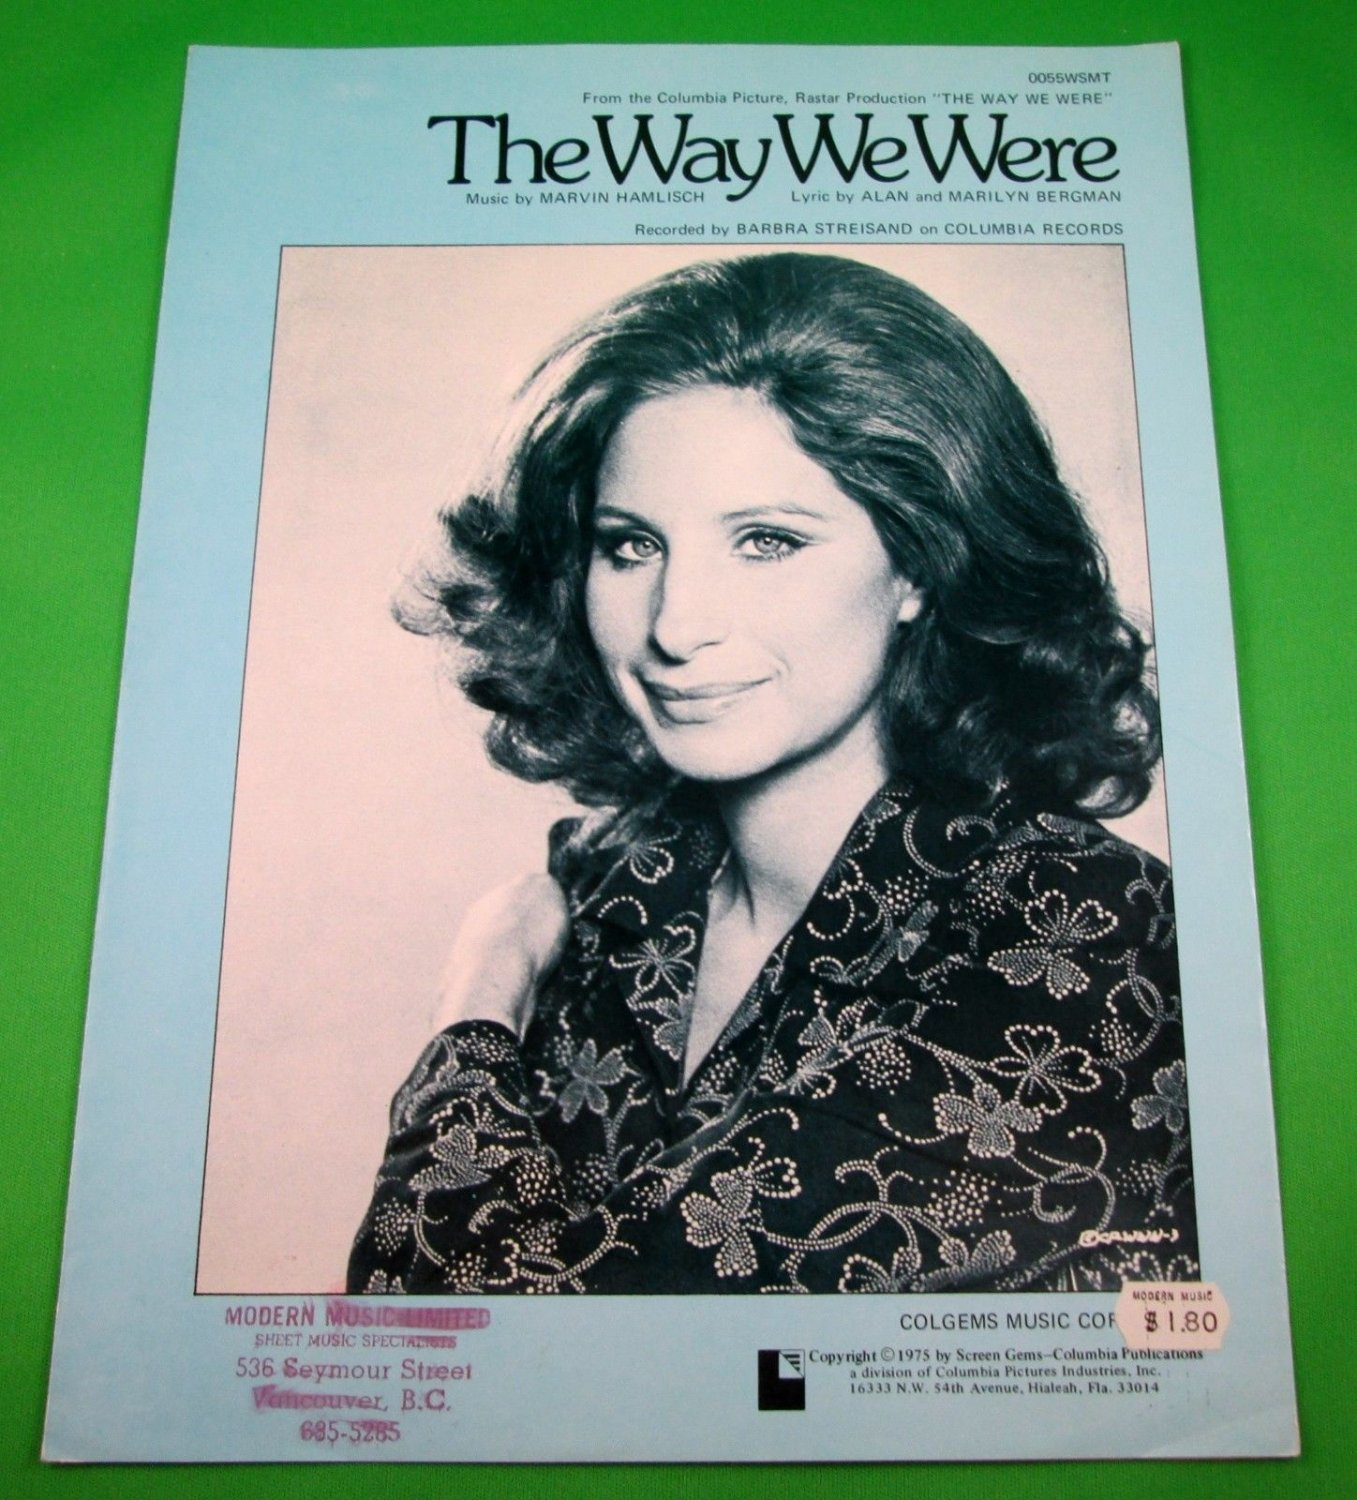 THE WAY WE WERE Piano/Vocal/Guitar Sheet Music BARBRA STREISAND © 1973